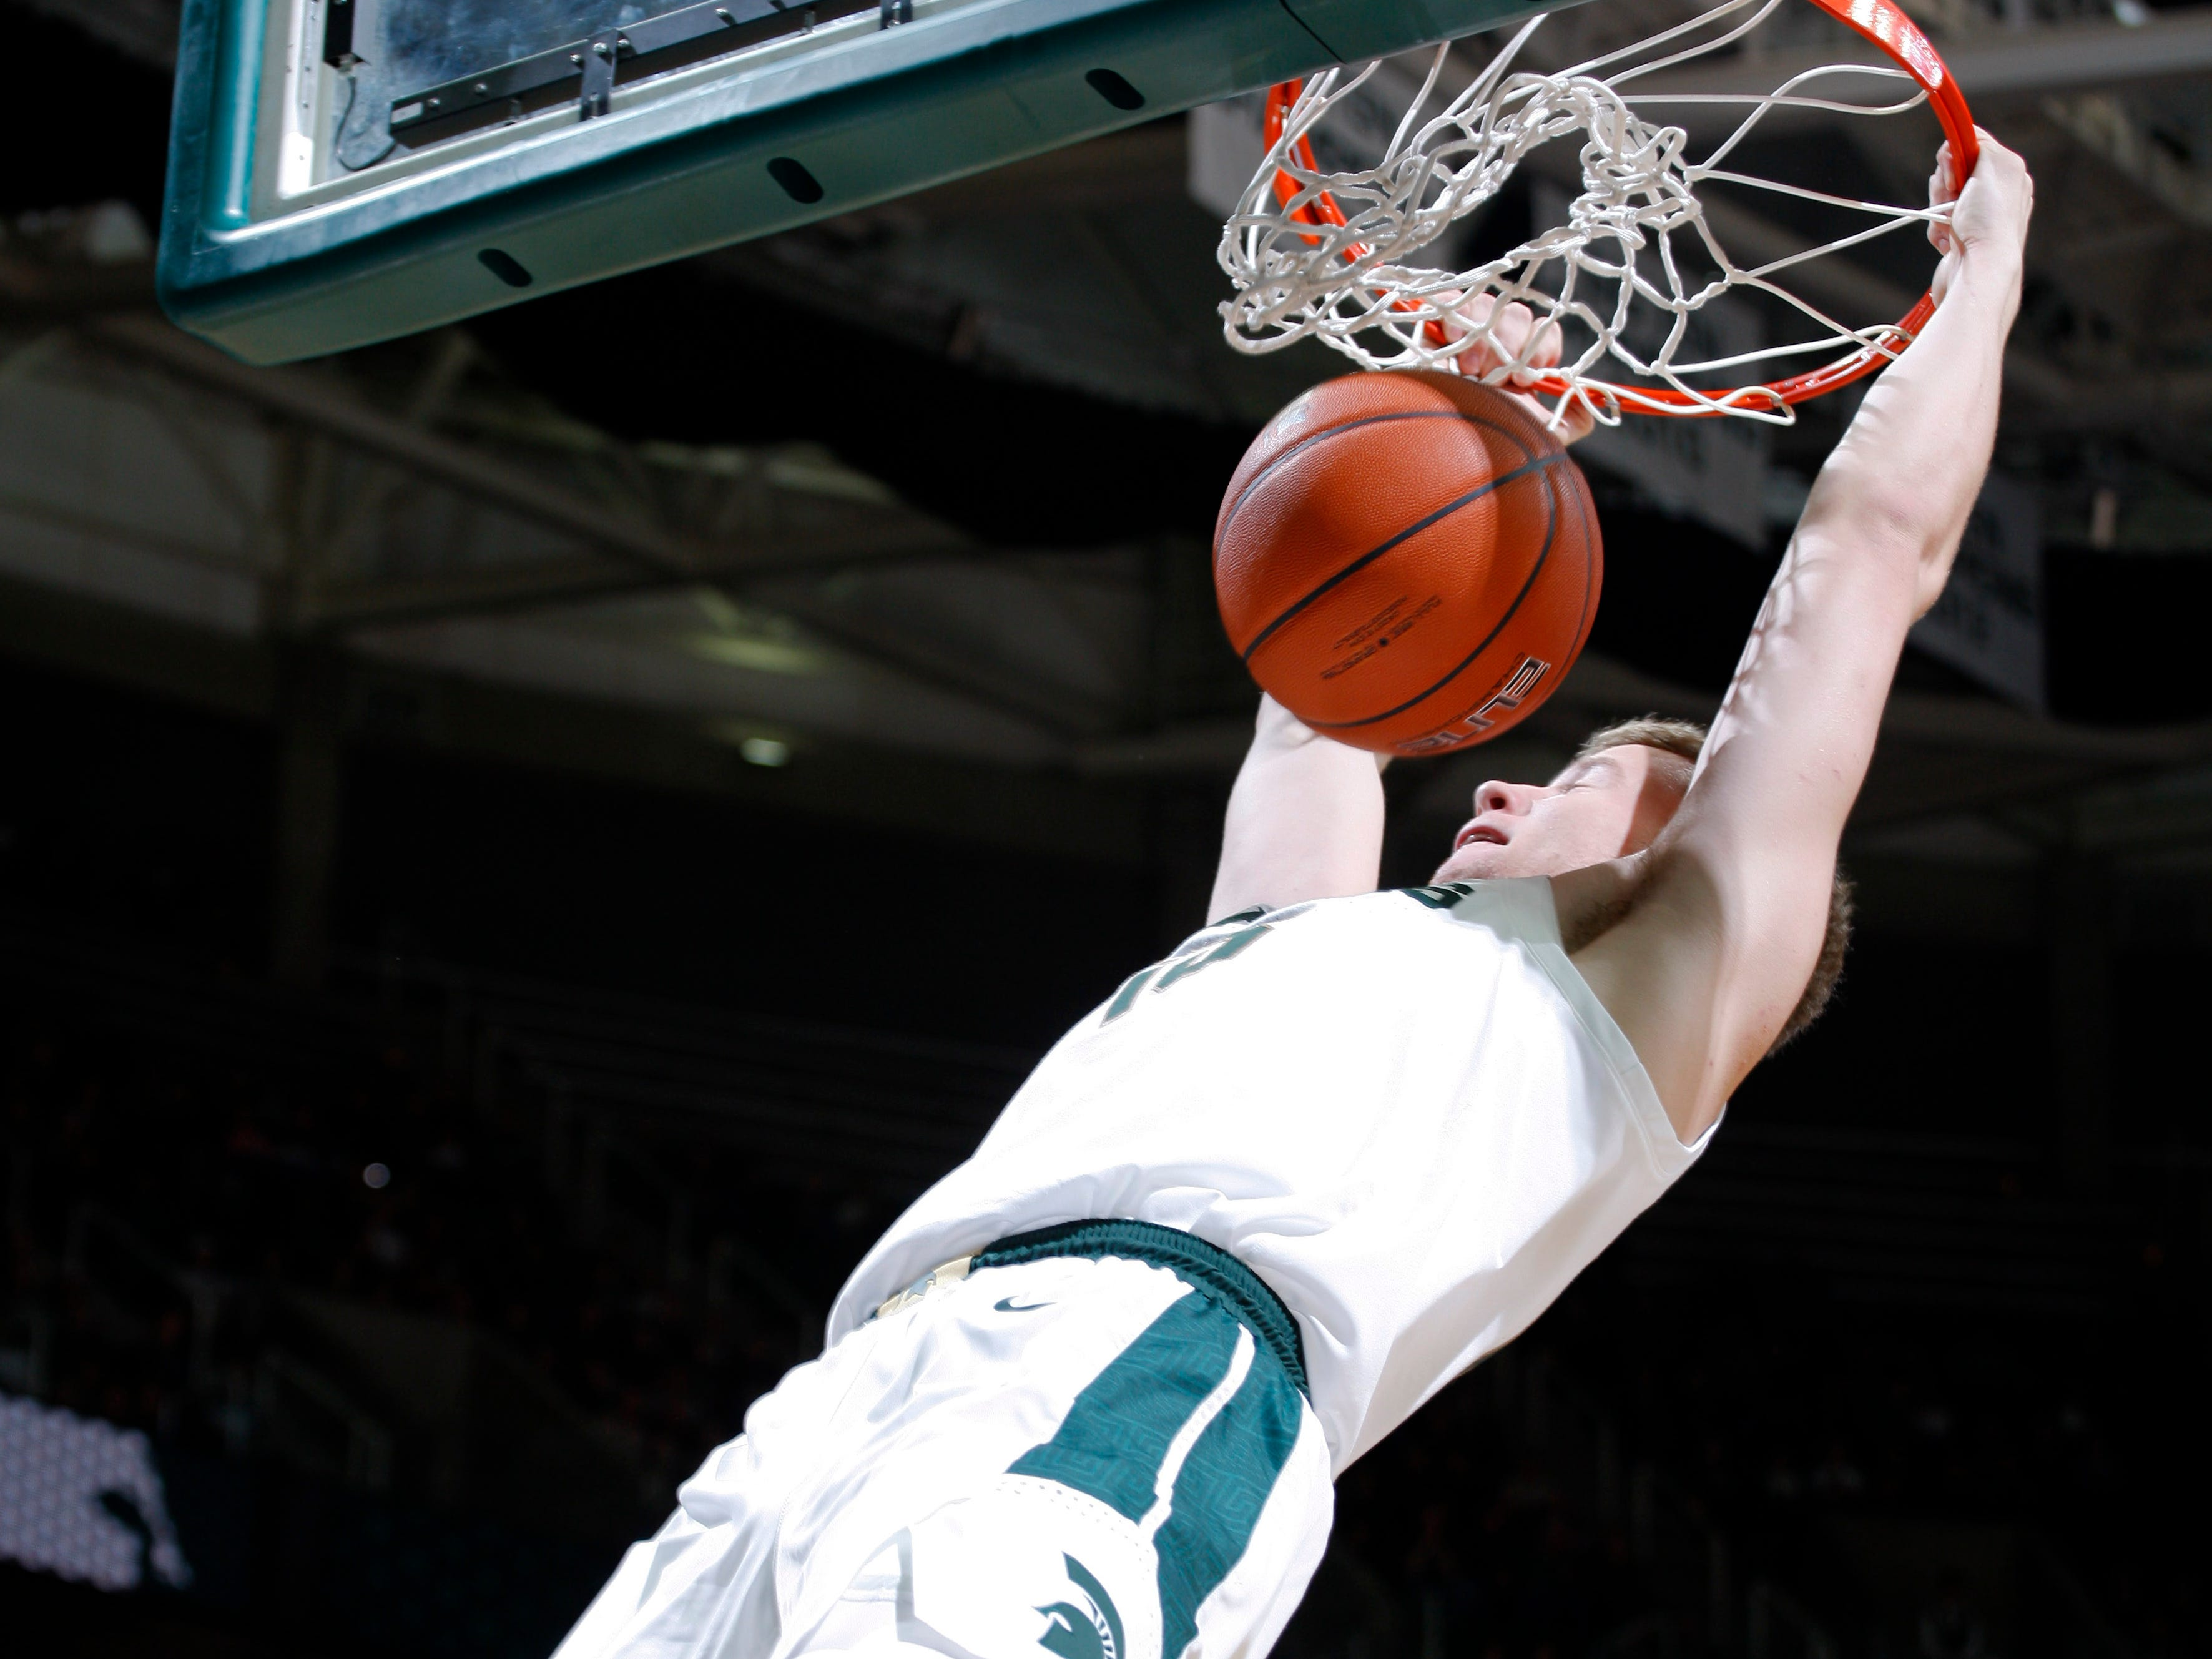 Michigan State's Thomas Kithier dunks against Northern Michigan, Tuesday, Oct. 30, 2018, in East Lansing, Mich.